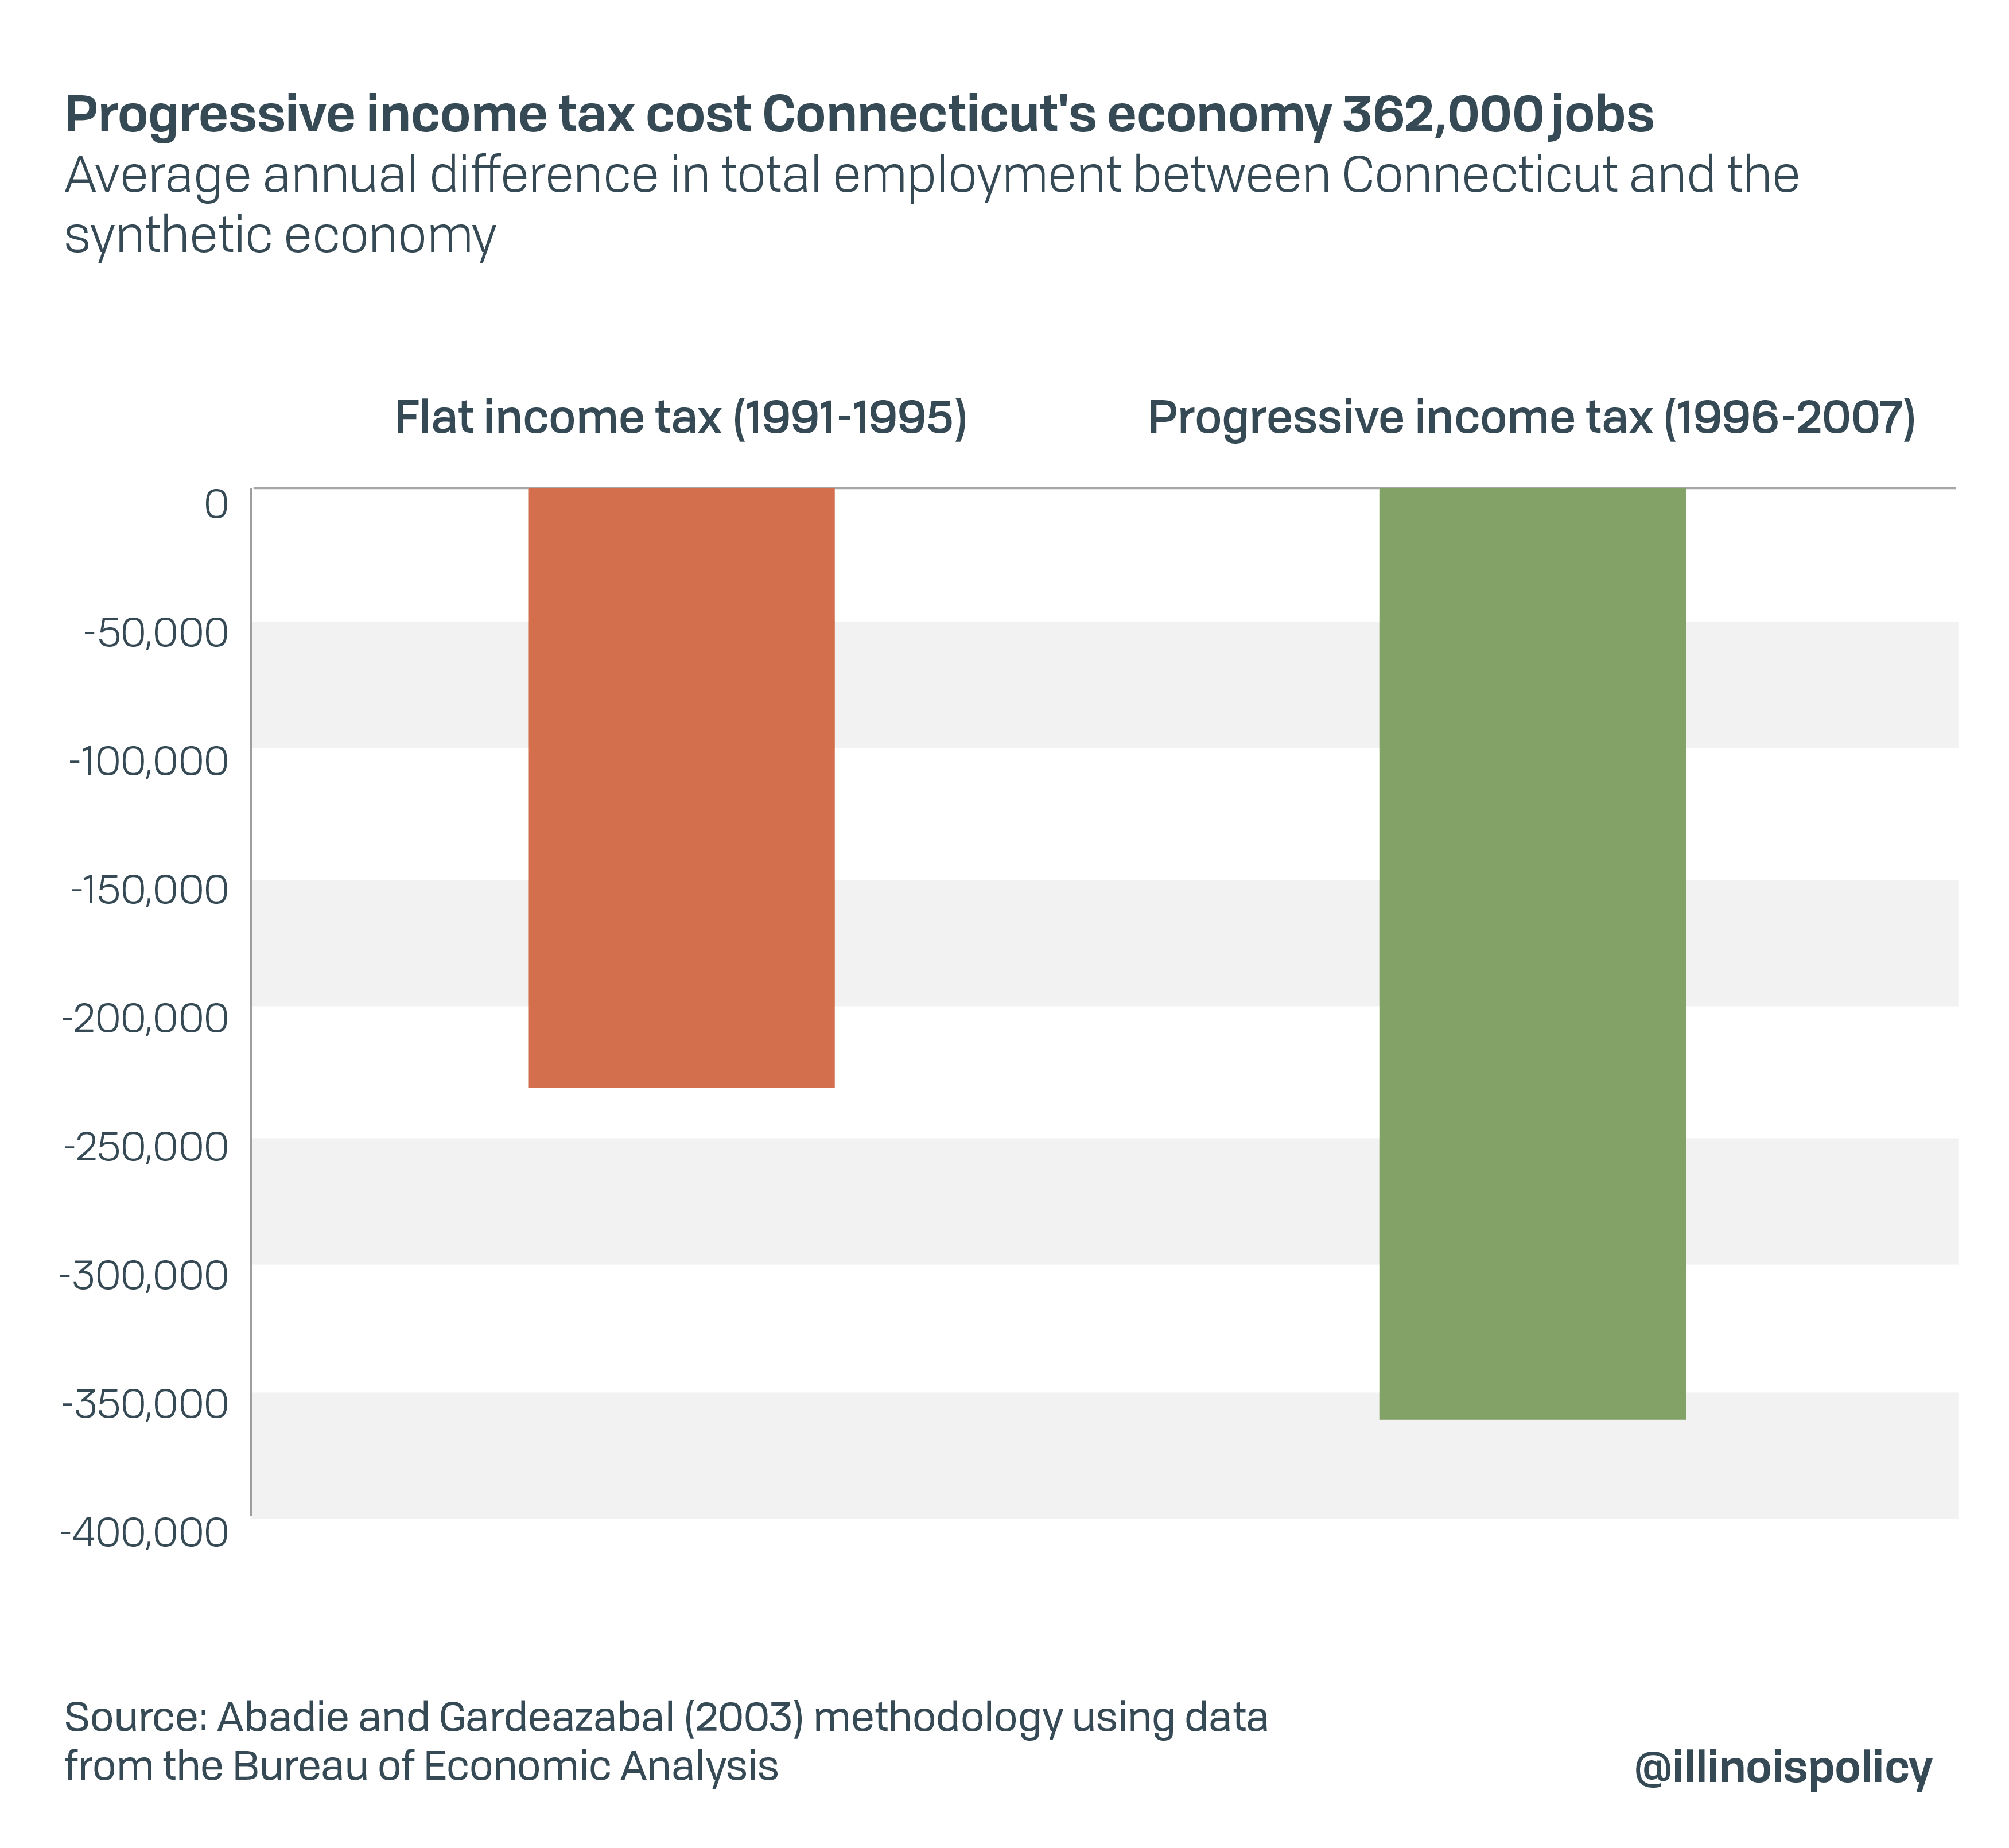 Progressive income tax cost Connecticut's economy 362,000 jobs